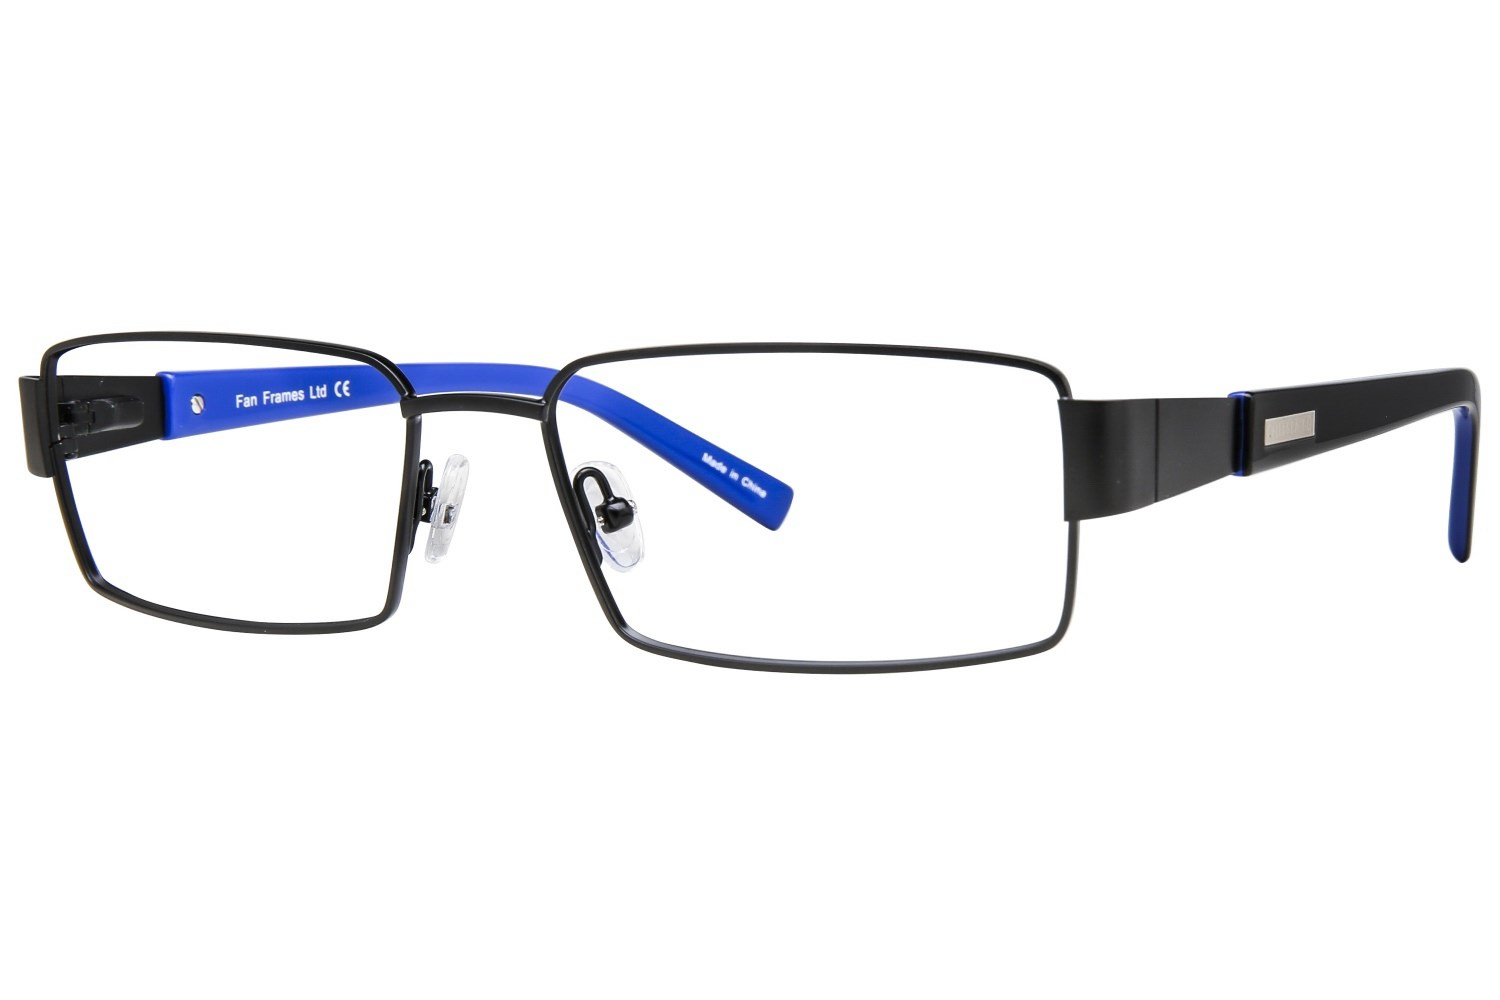 Plastic Eyeglass Frames For Kids - Search